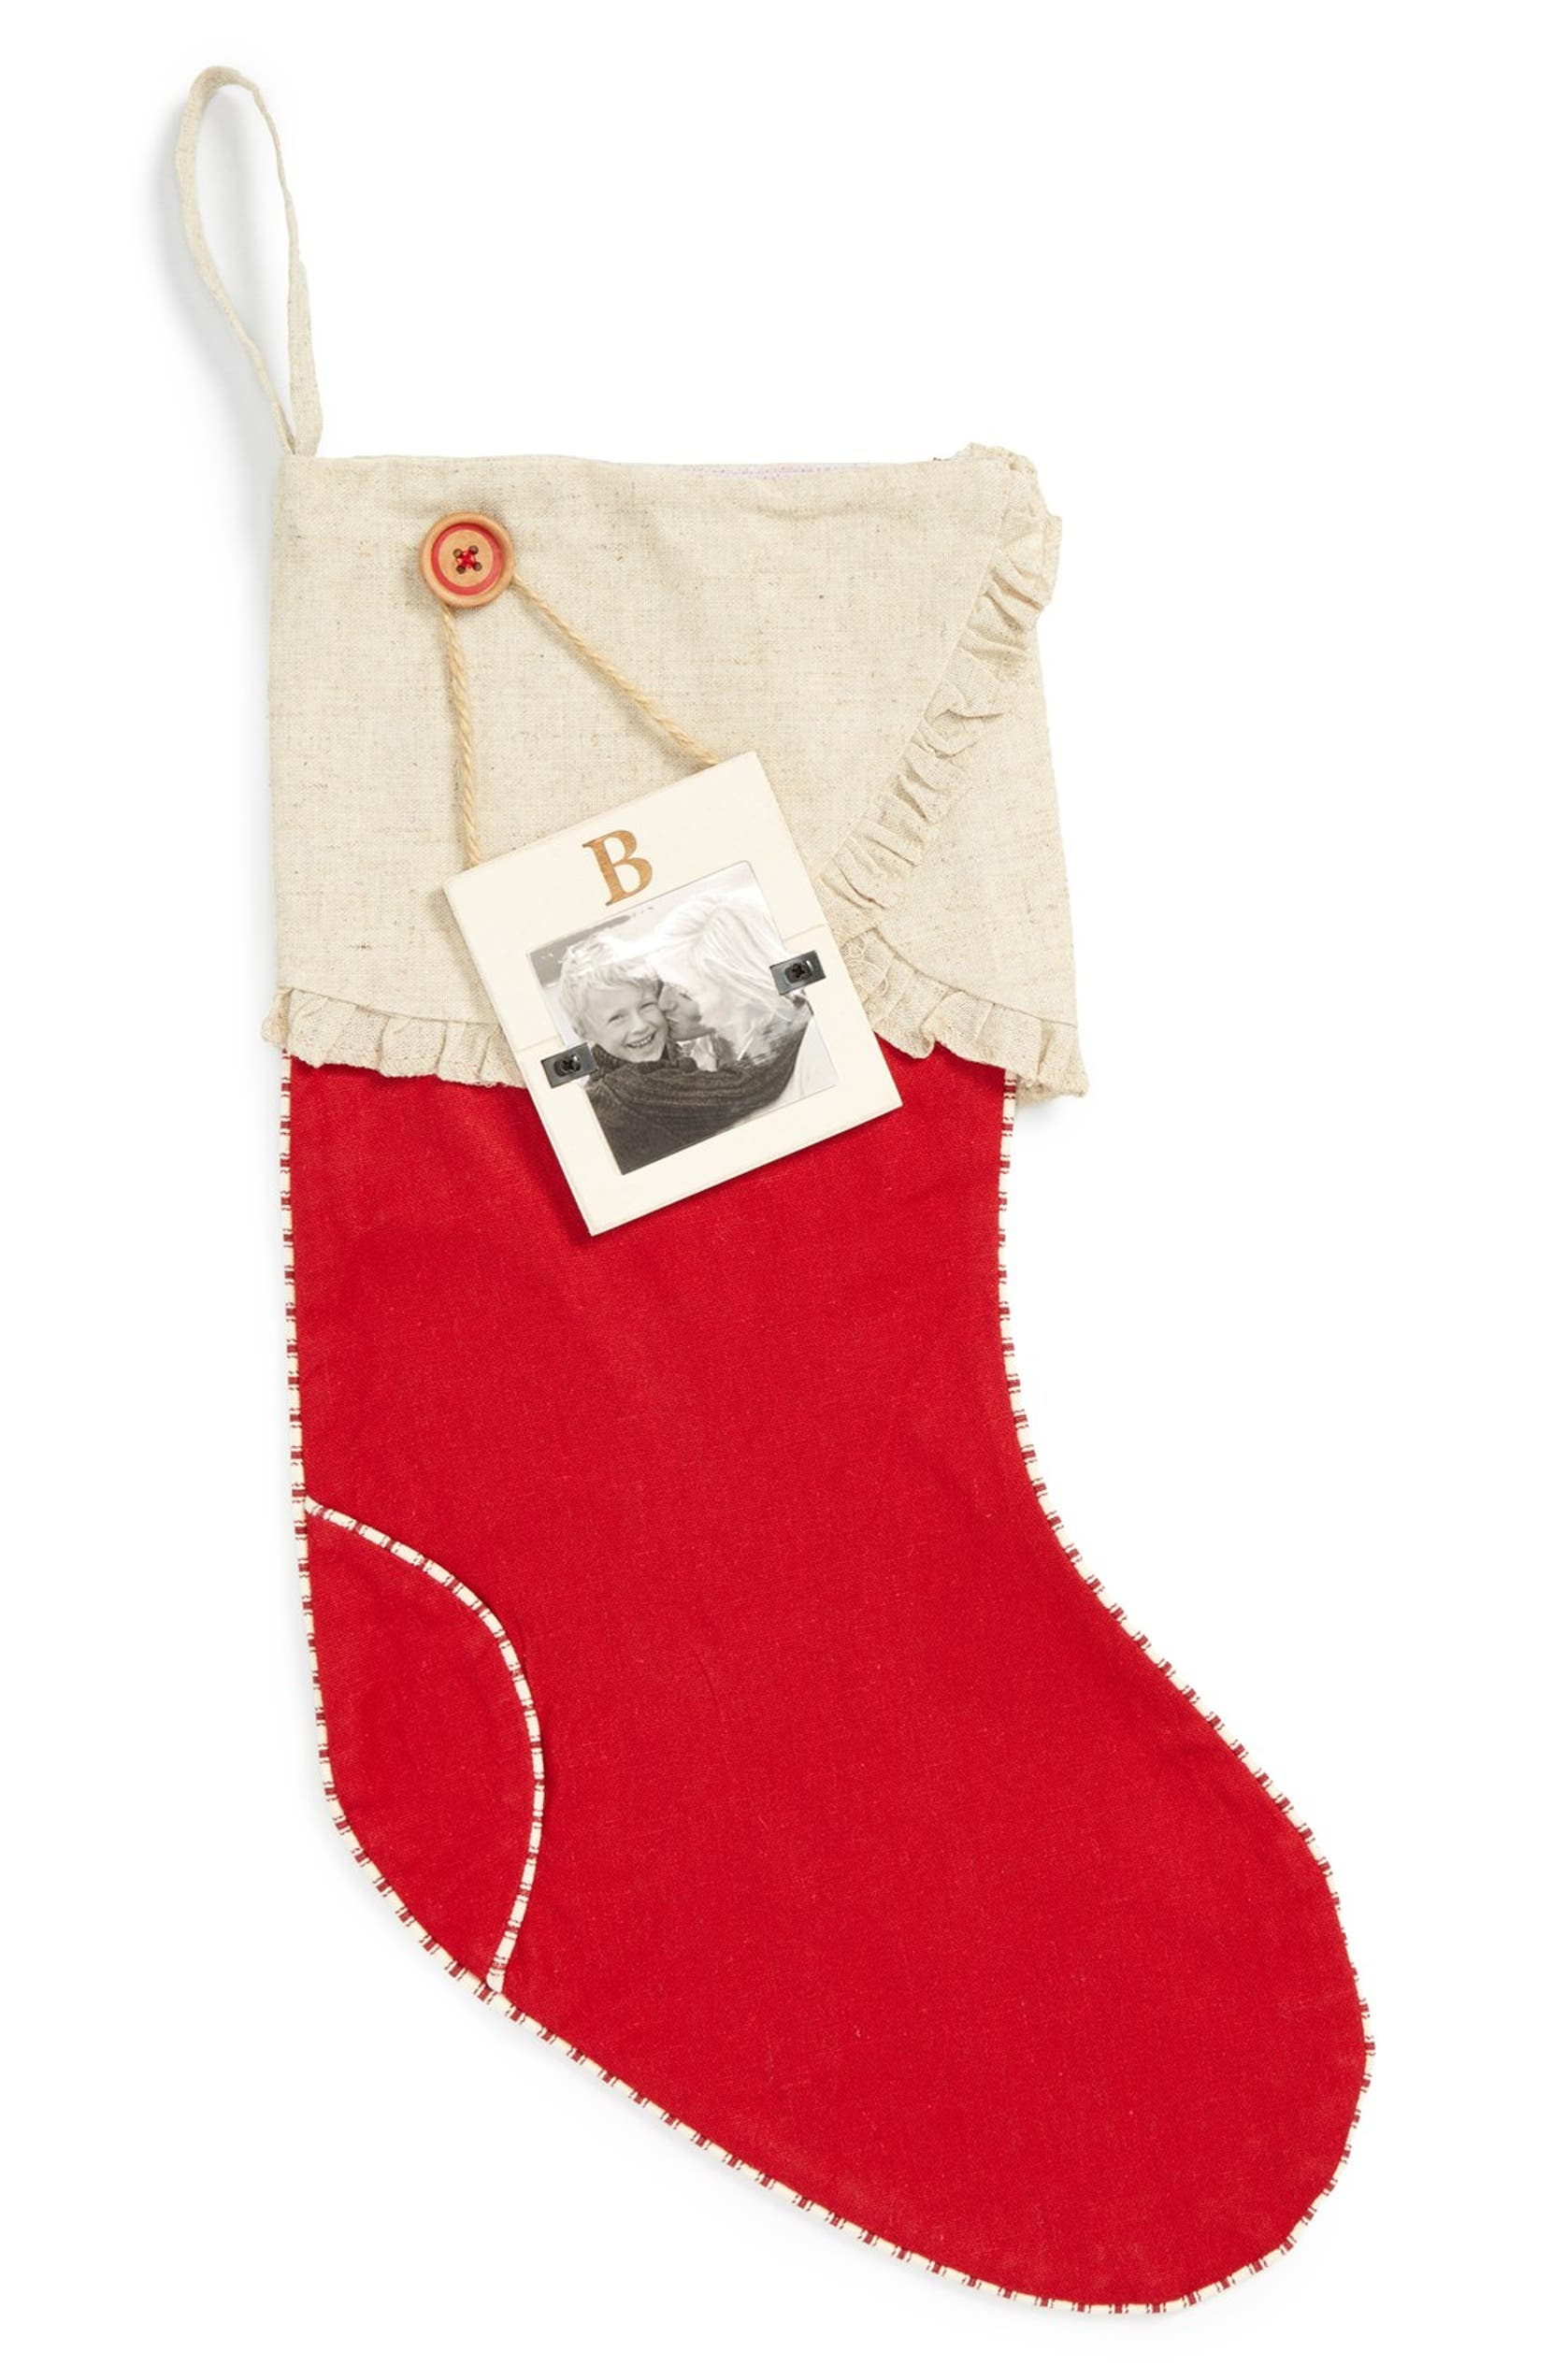 Mud Pie Linen Christmas Stocking & Initial Frame Ornament   Nordstrom